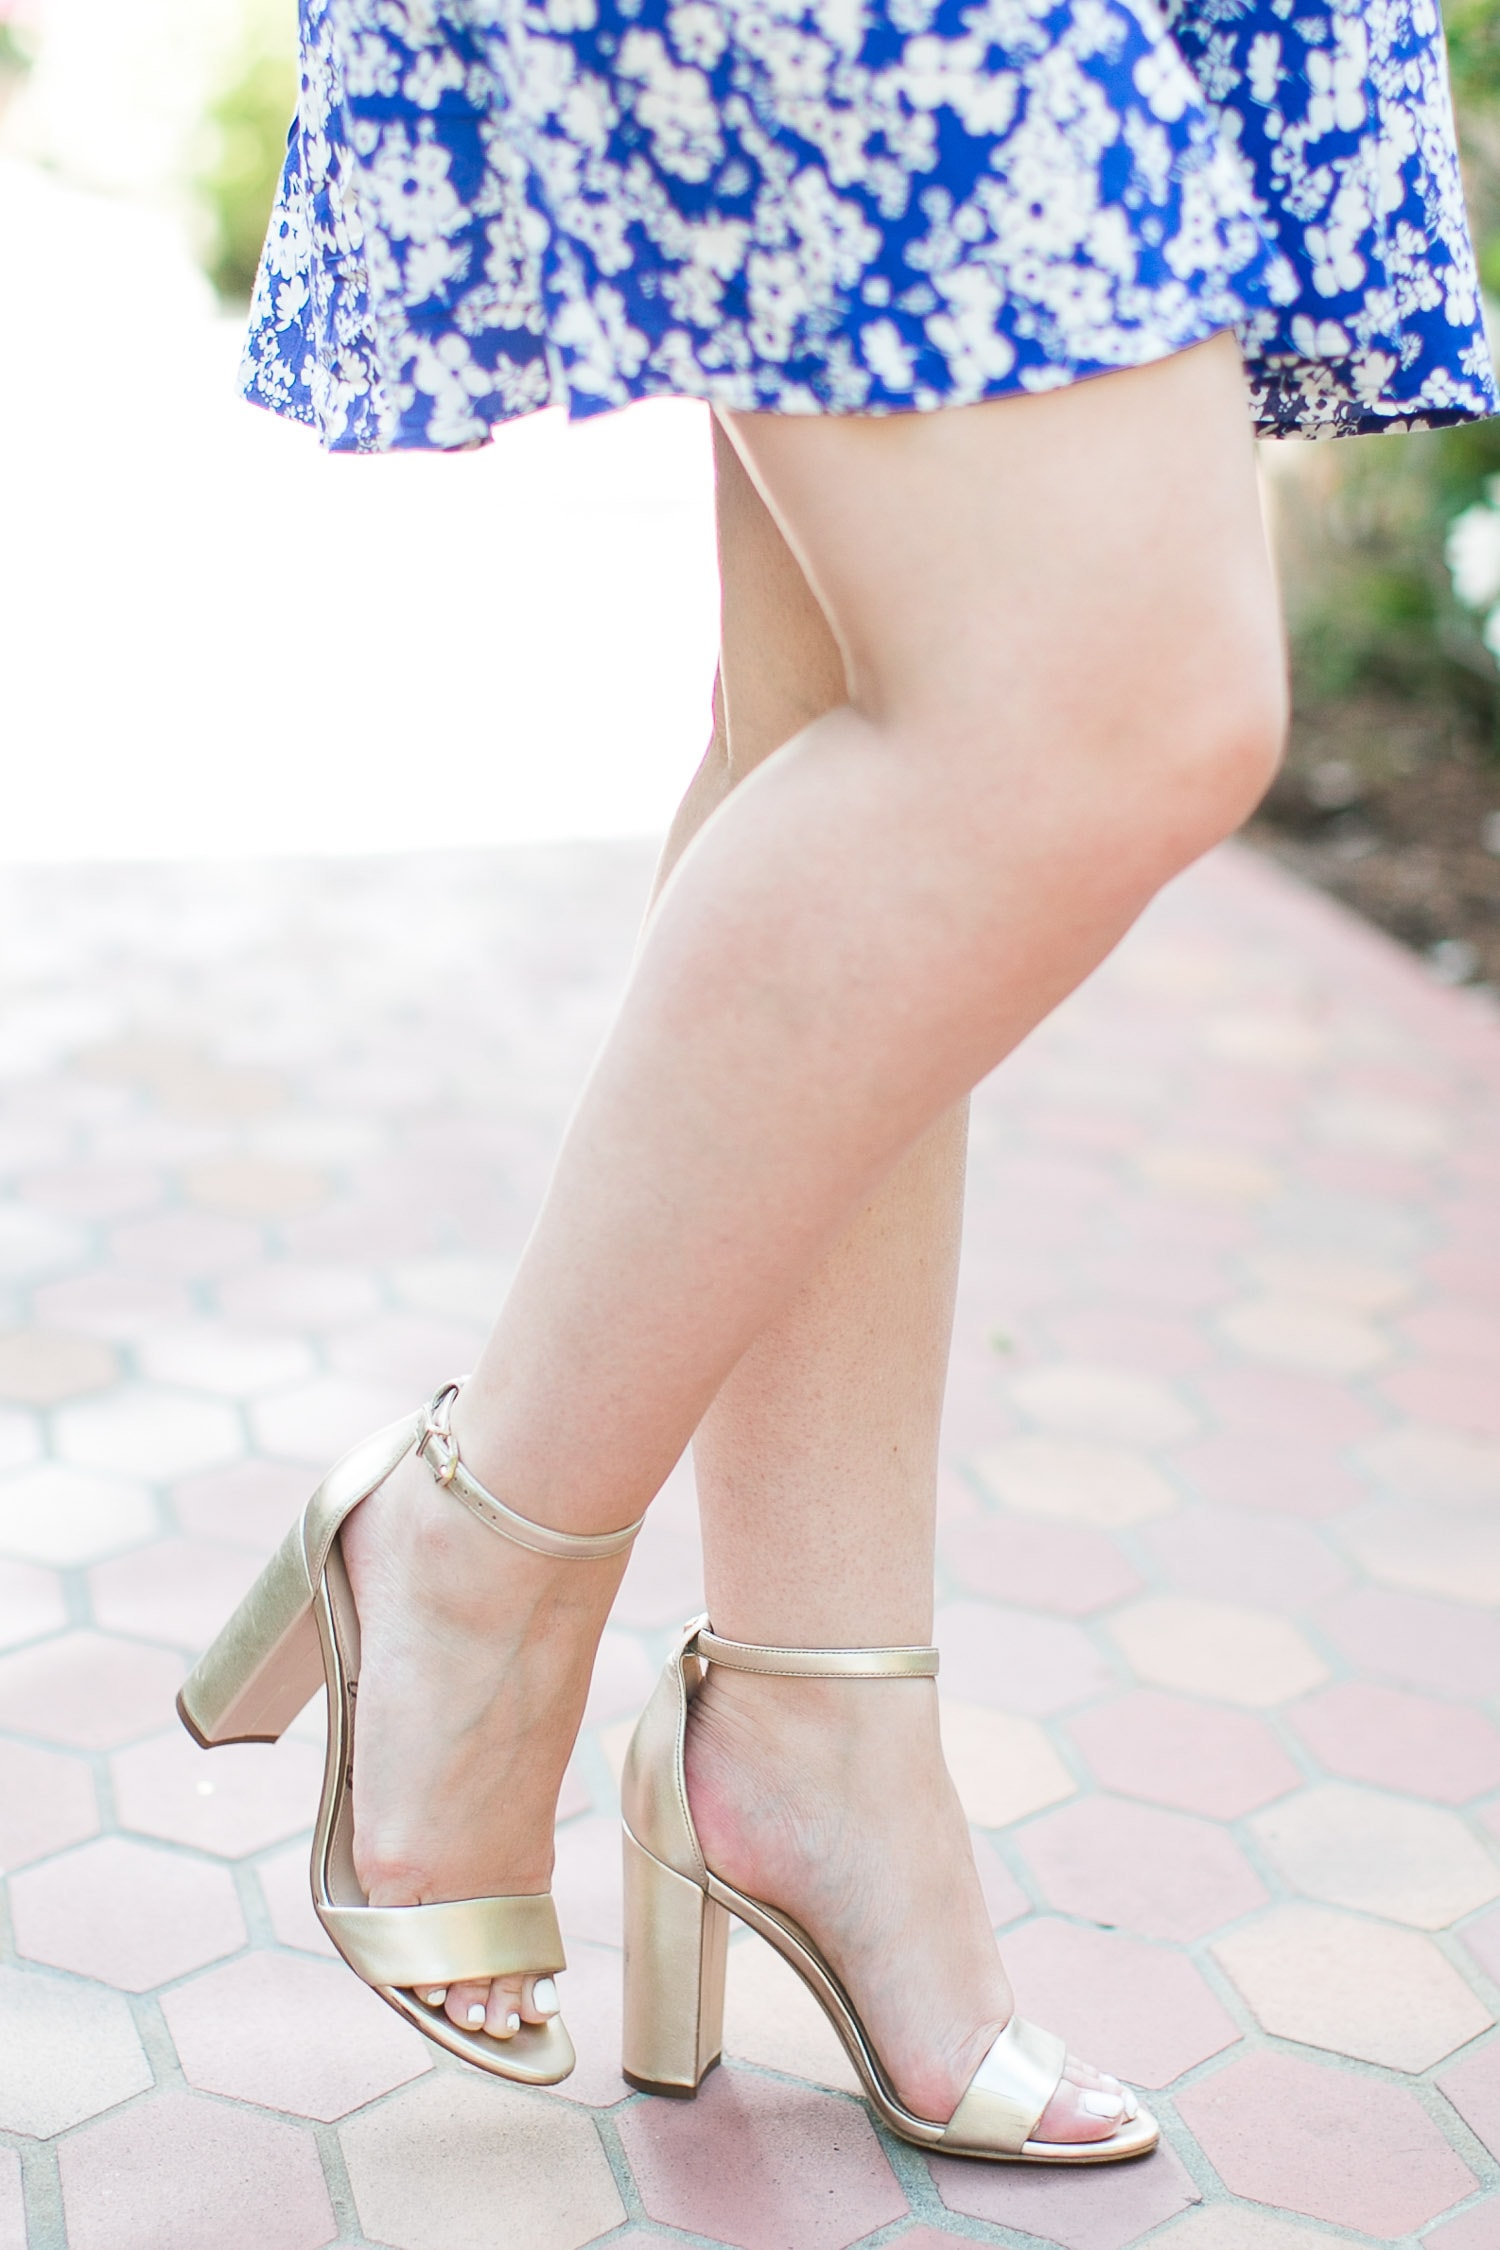 The perfect shoes - Sam Edelman Yaro gold heeled sandals styled by Ashley Brooke Nicholas in a cute summer outfit idea